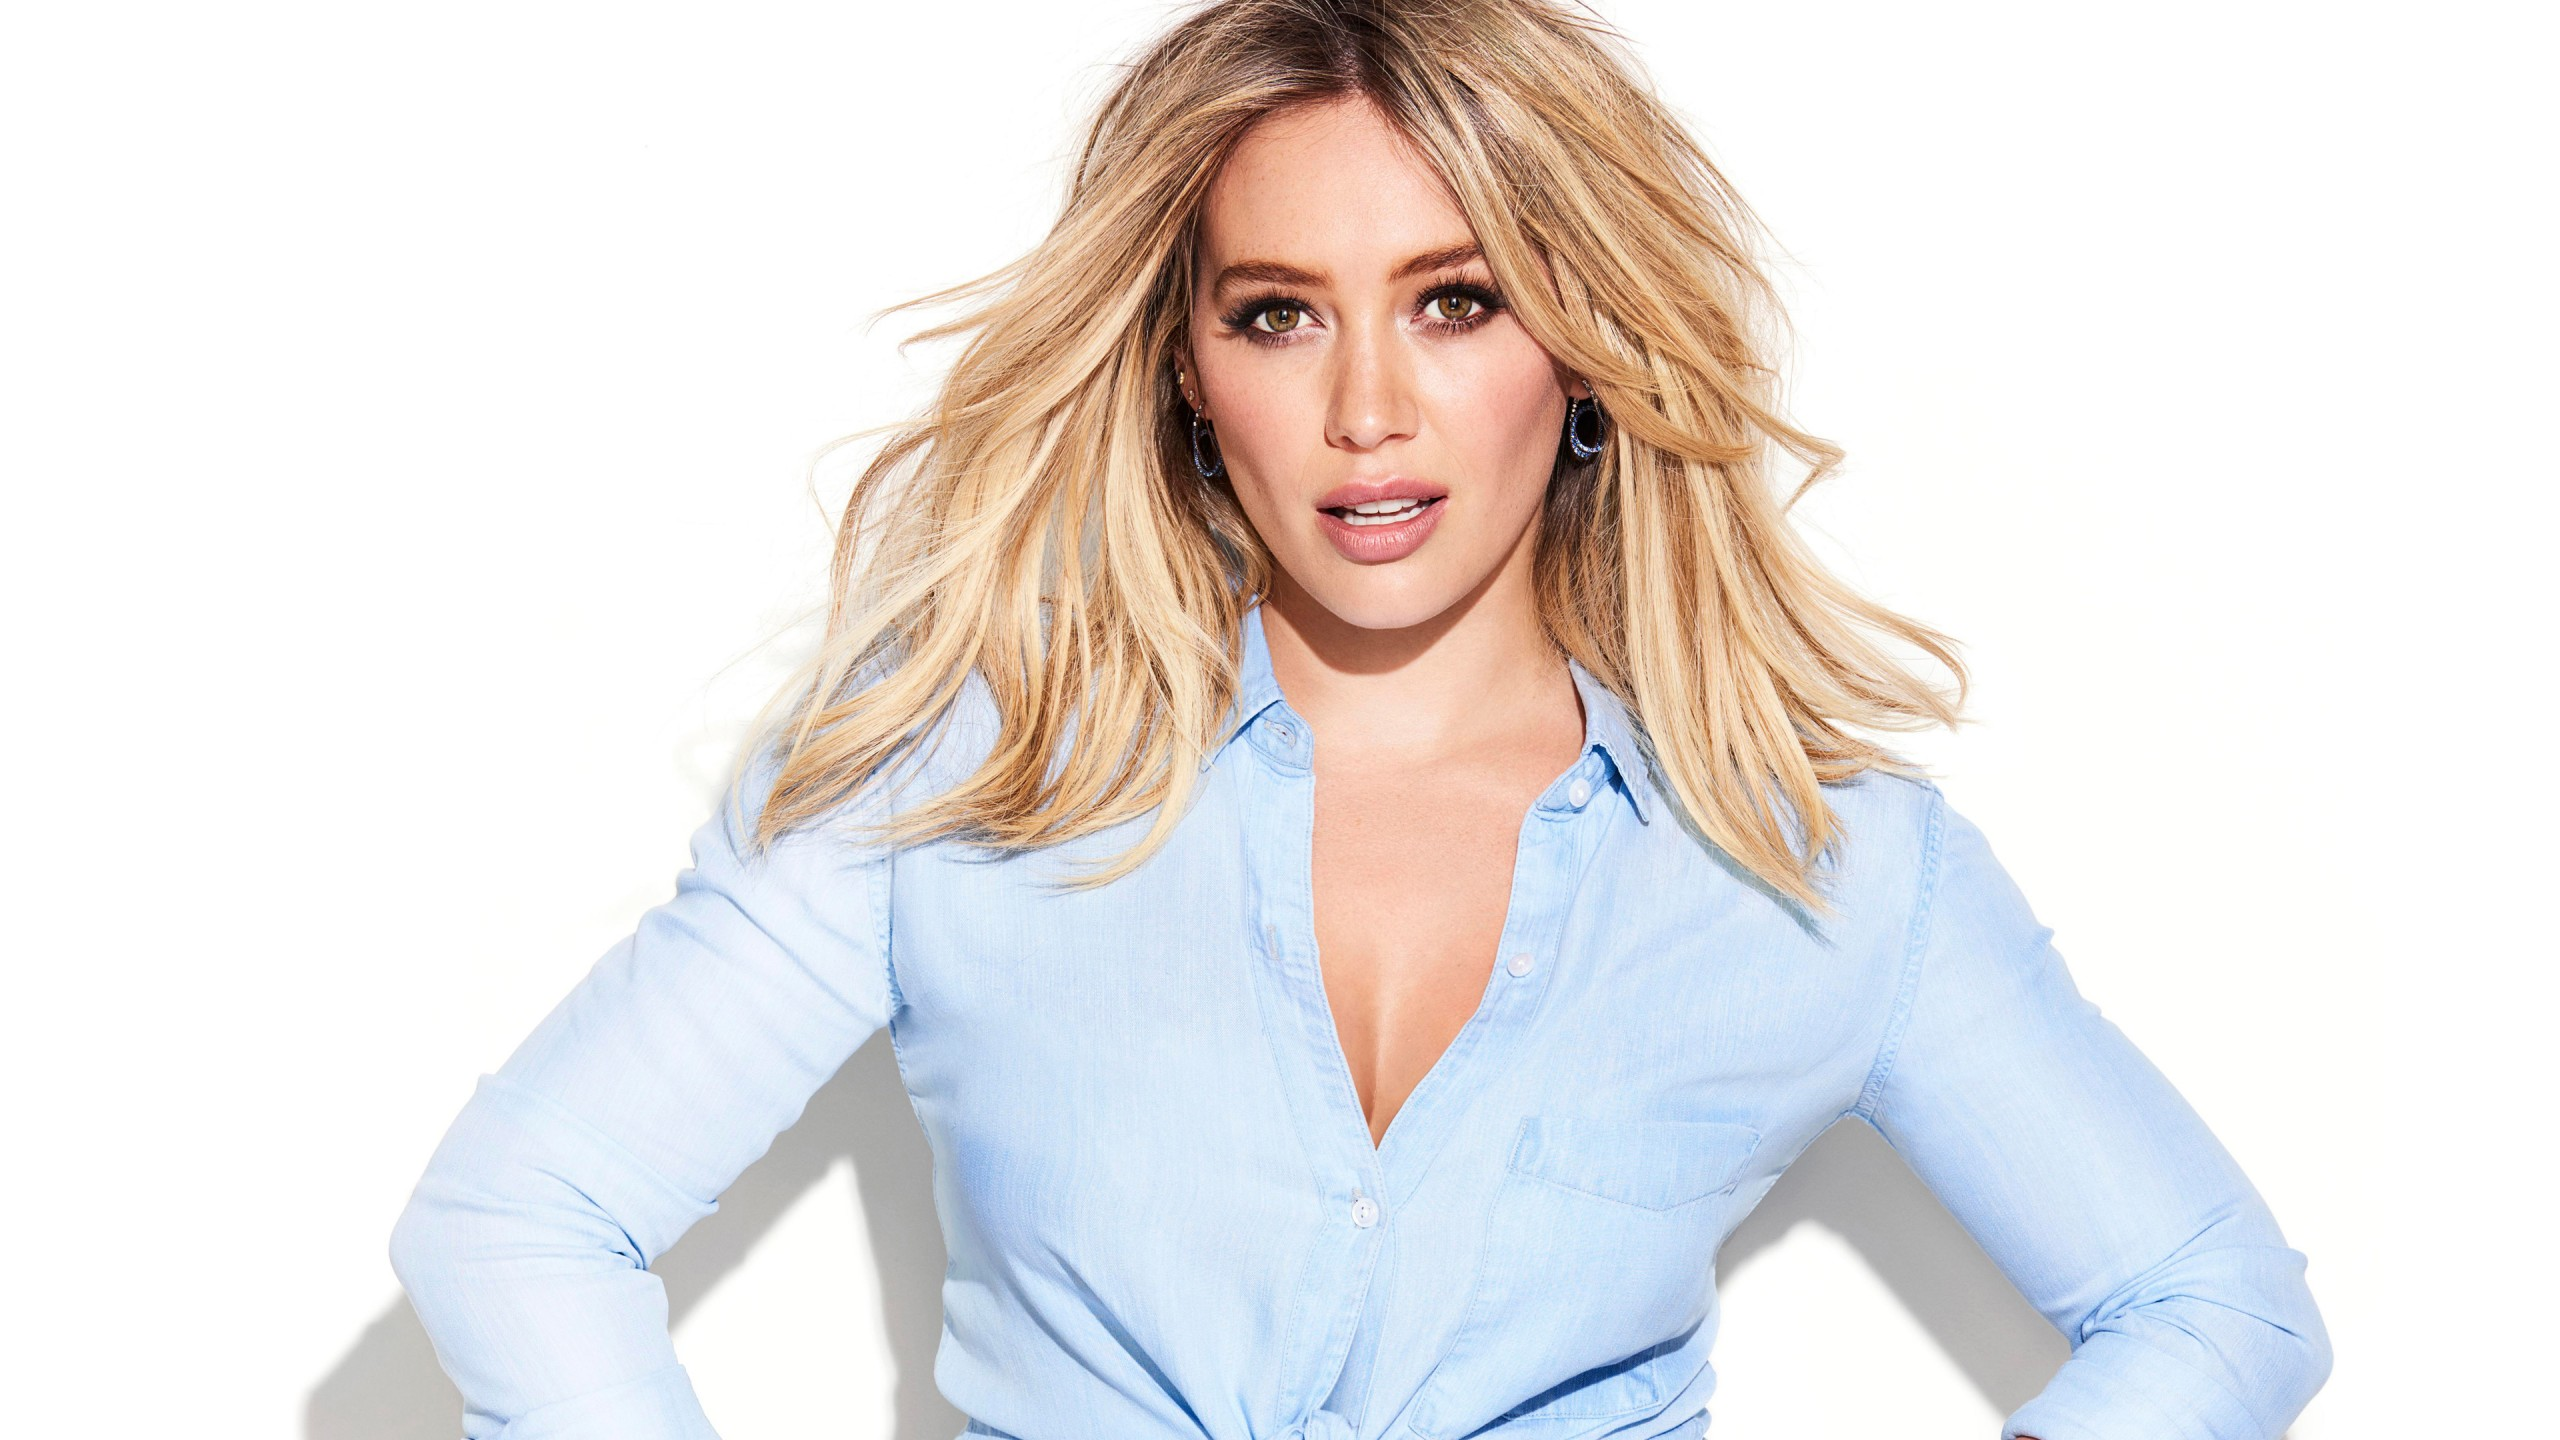 Hilary Duff Hd Wallpaper for Desktop and Mobiles